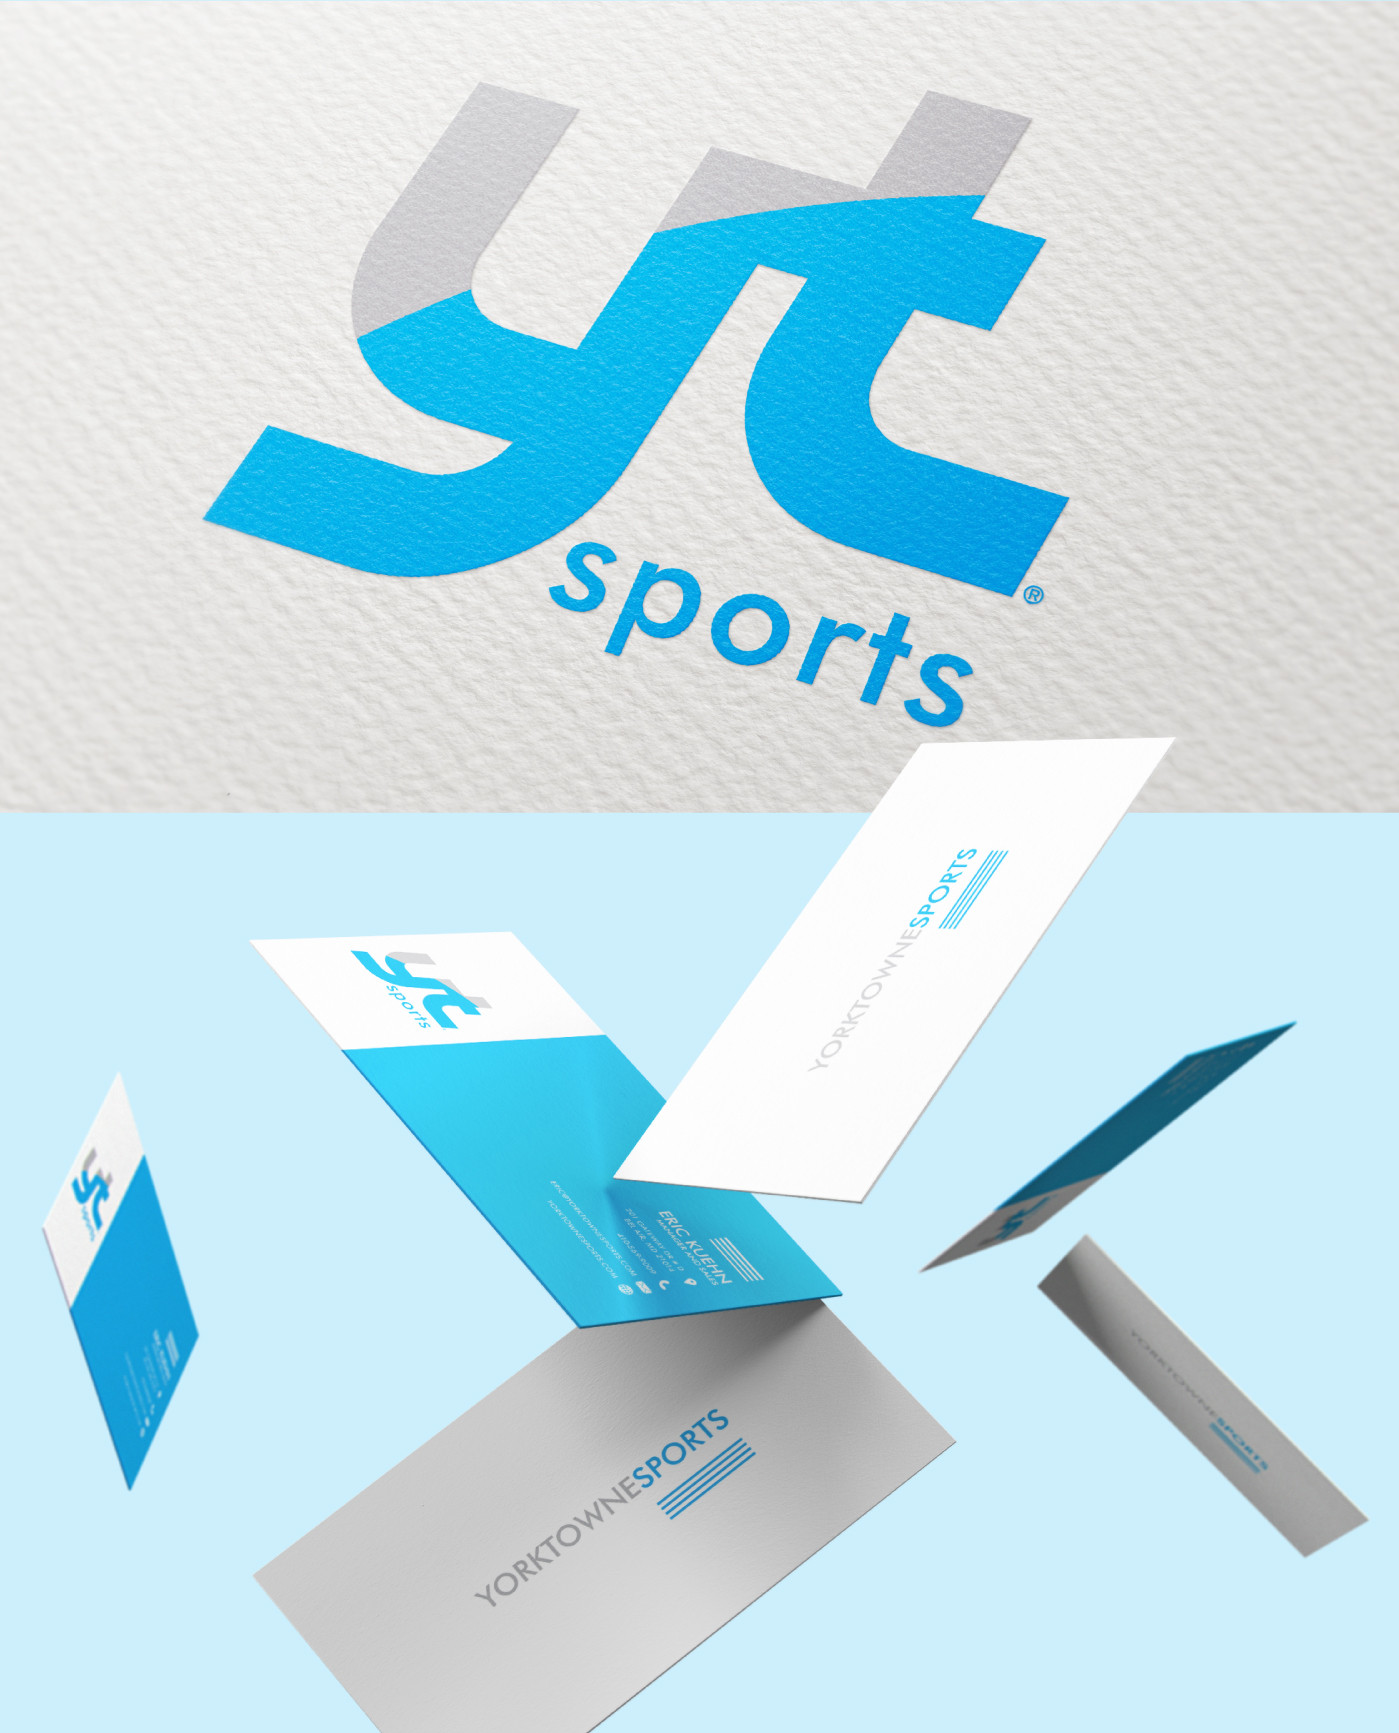 branding-mockup-business-cards.jpg